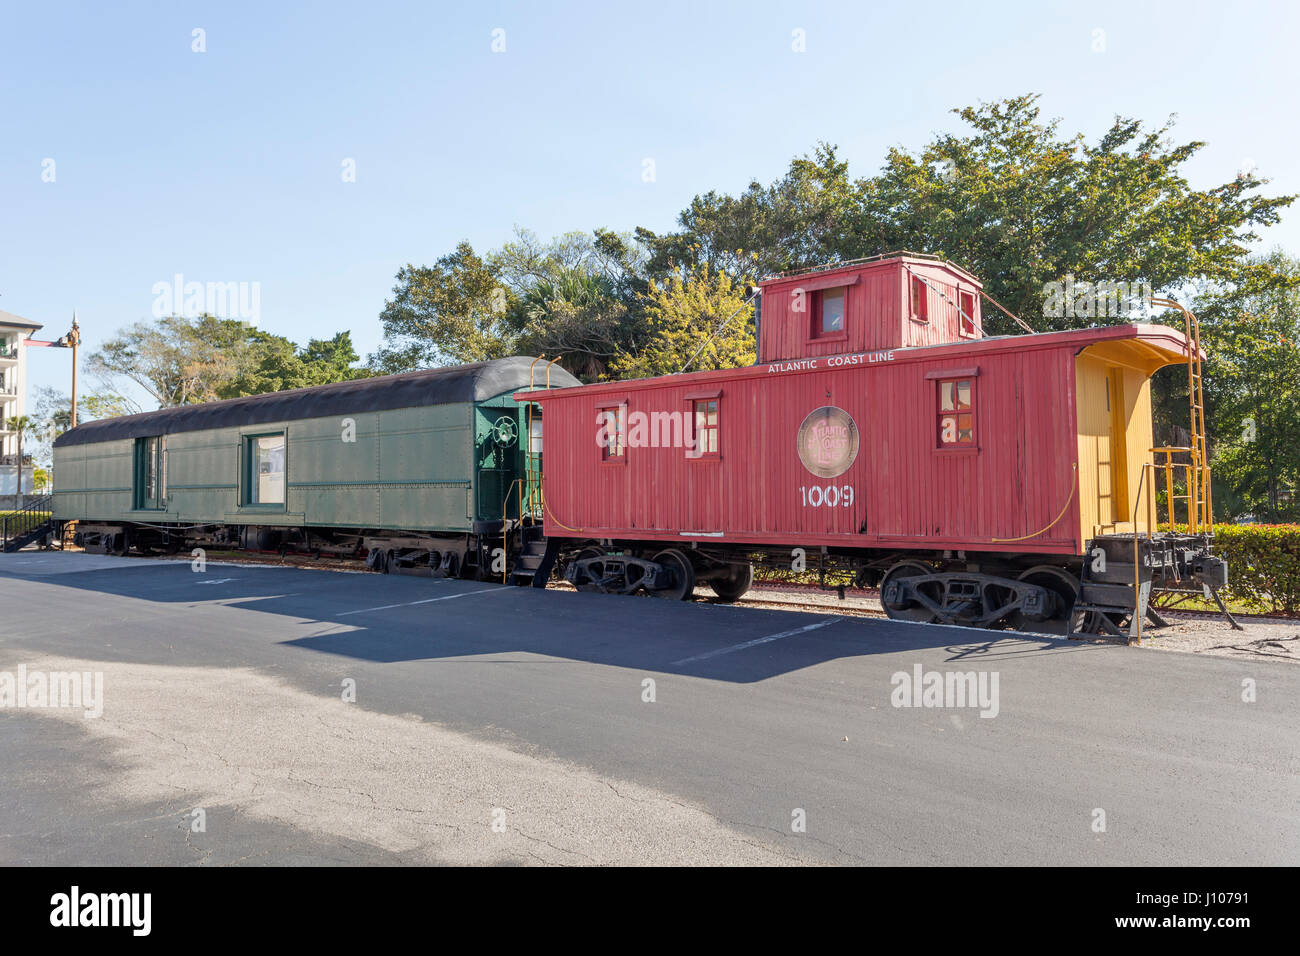 Naples, Fl, USA - March 21, 2017: Old waggons from the Atlantic Coast Line at the Naples depot and train museum. - Stock Image